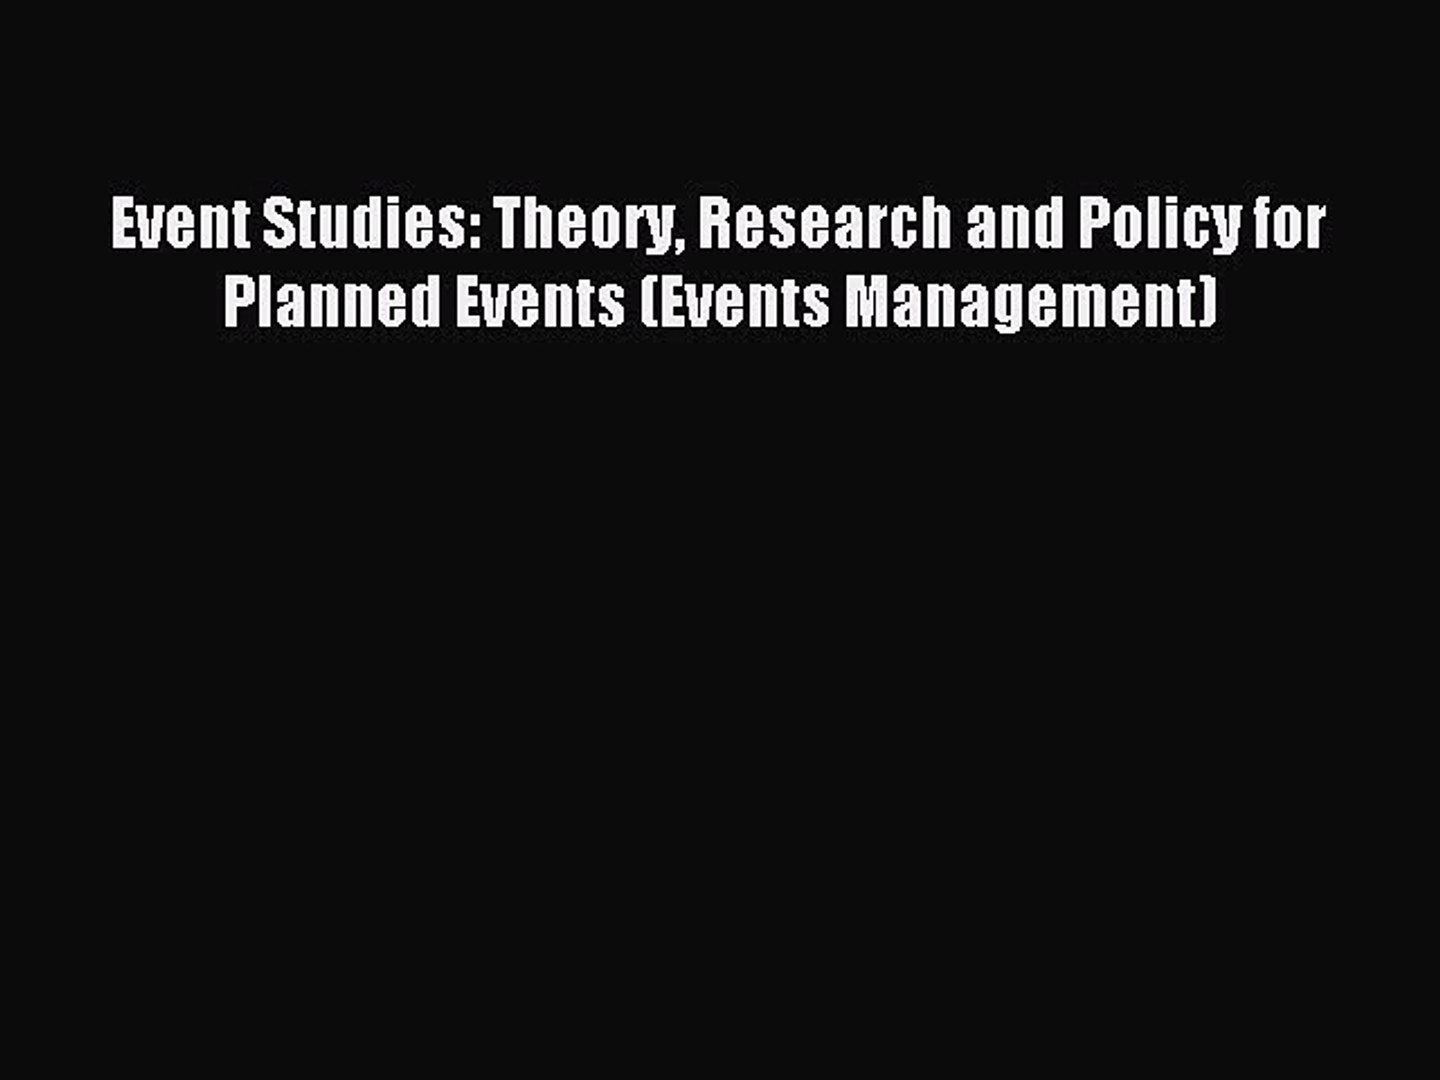 Download Event Studies: Theory Research and Policy for Planned Events (Events Management) Ebook